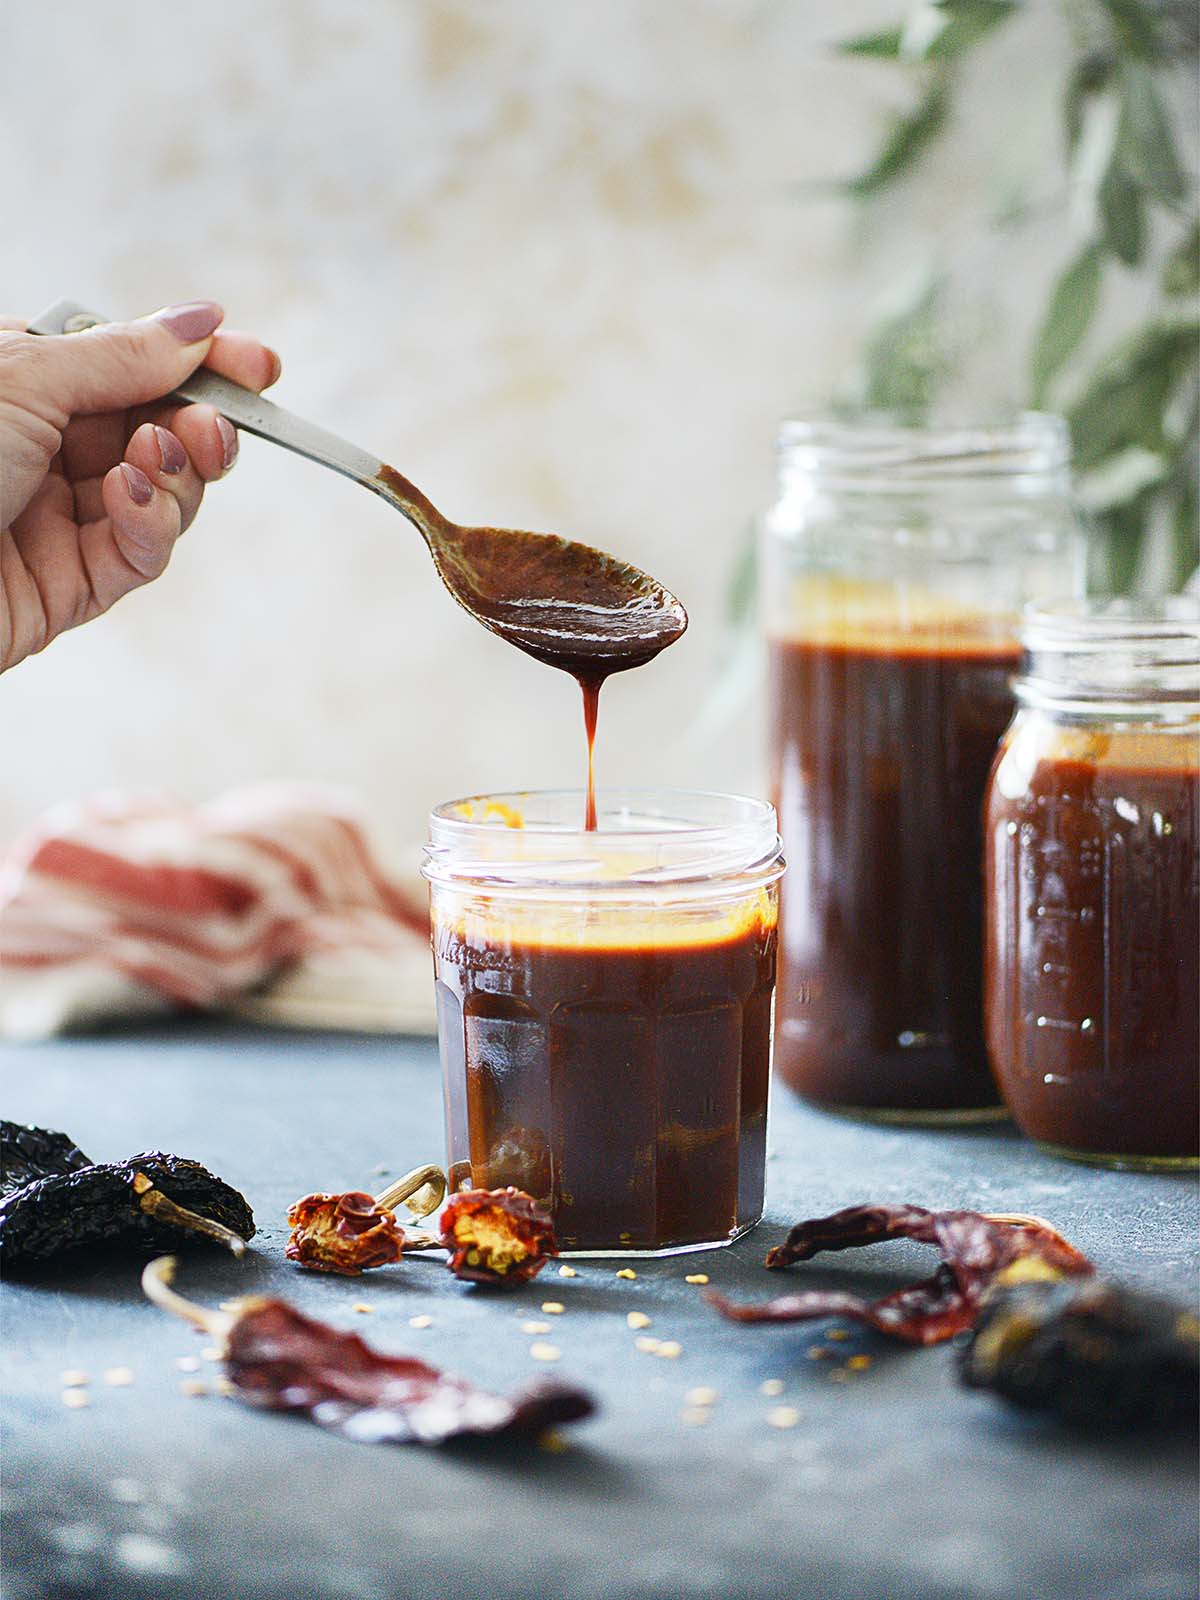 3 jars with red salsa and a spoon.